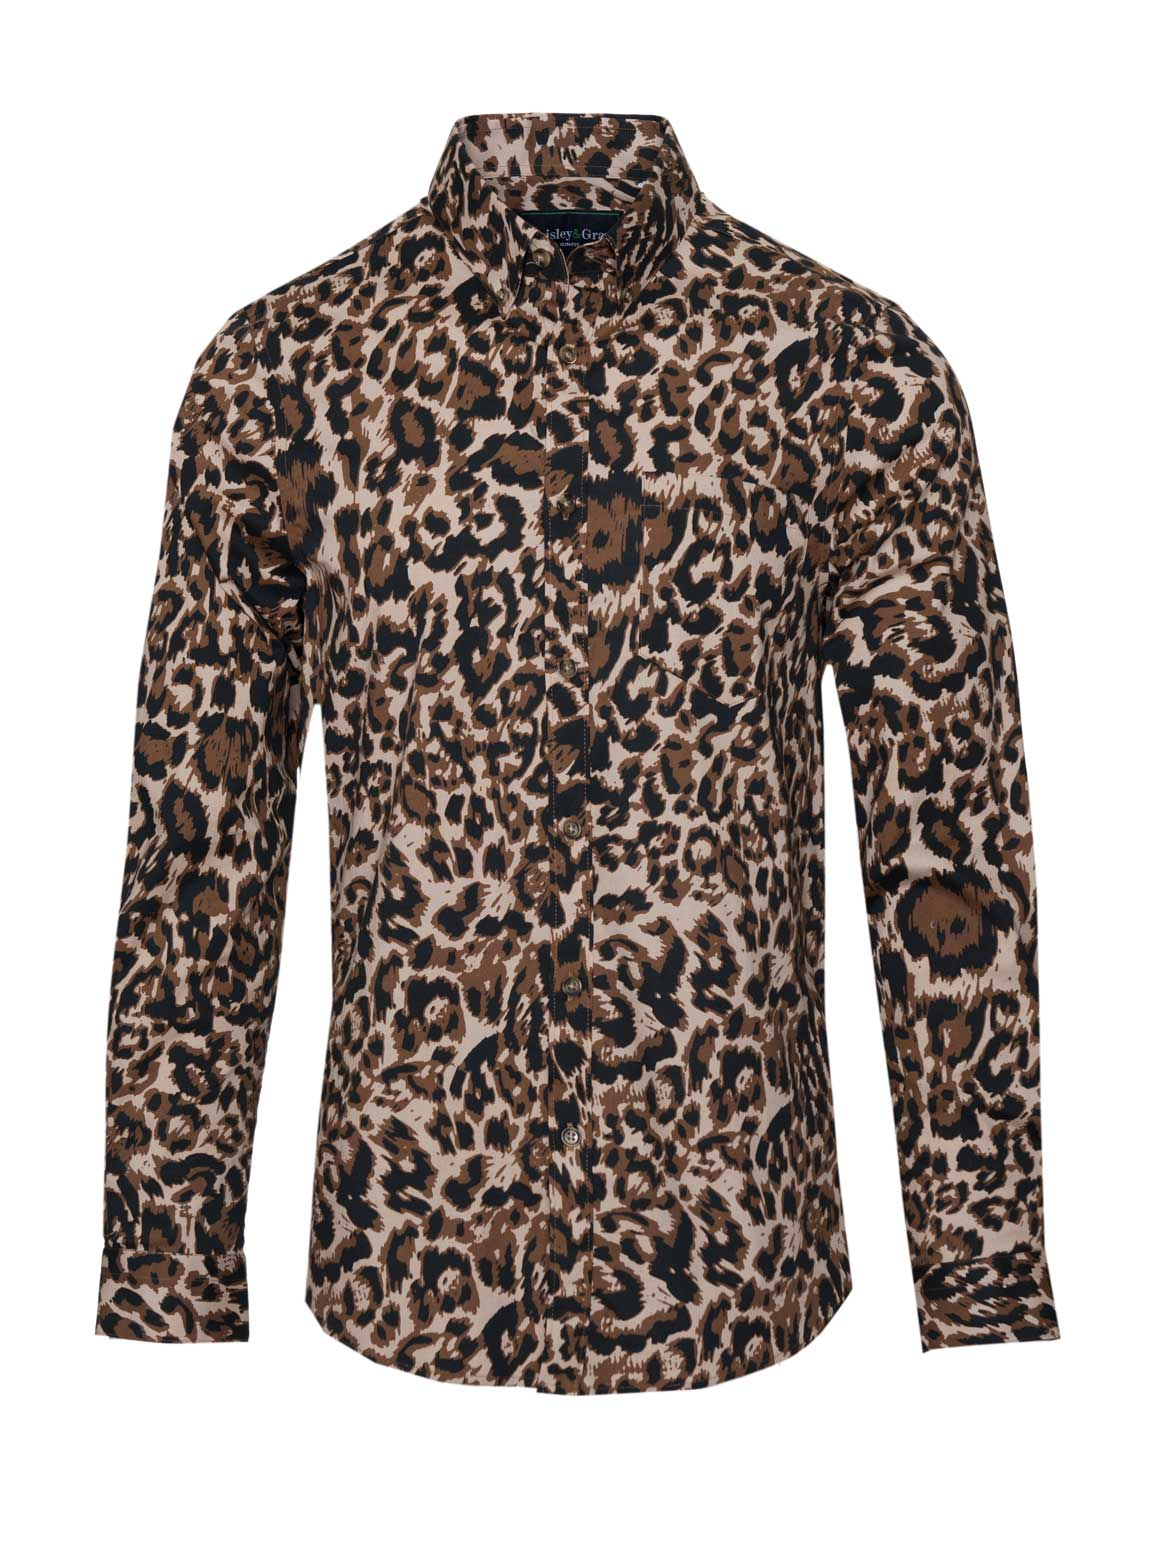 Long Sleeve Shirt - Leopard